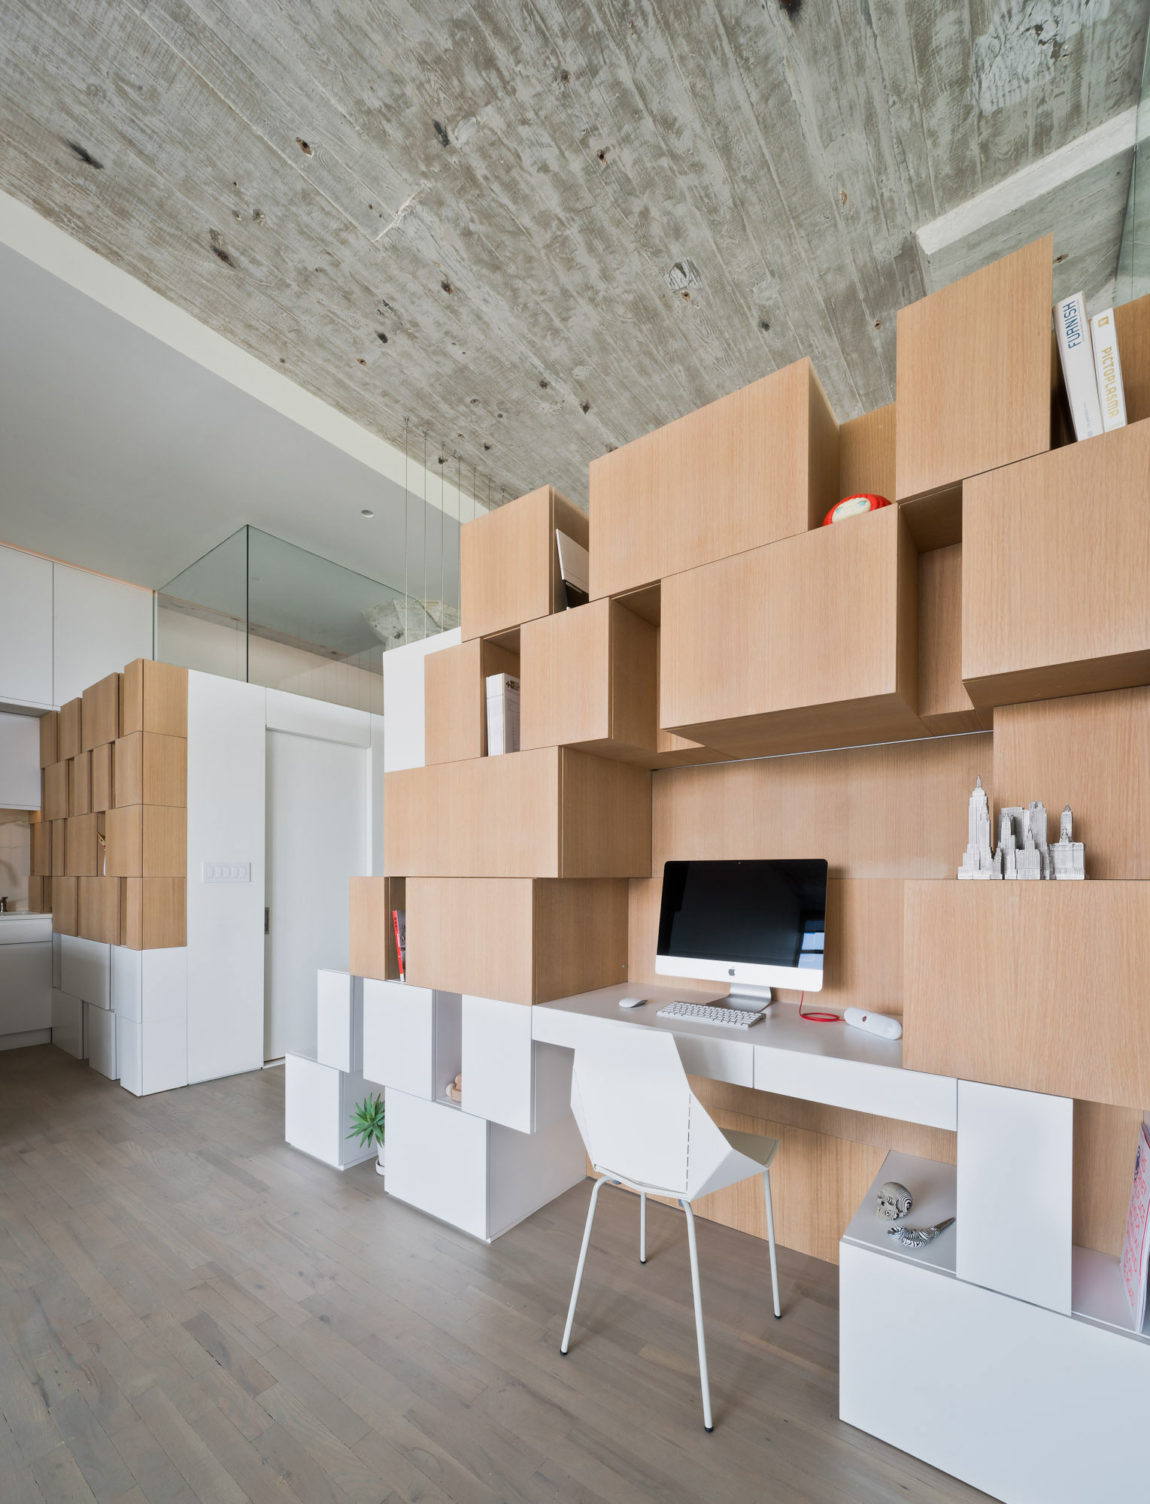 Doehler 2 by SABO project (9)